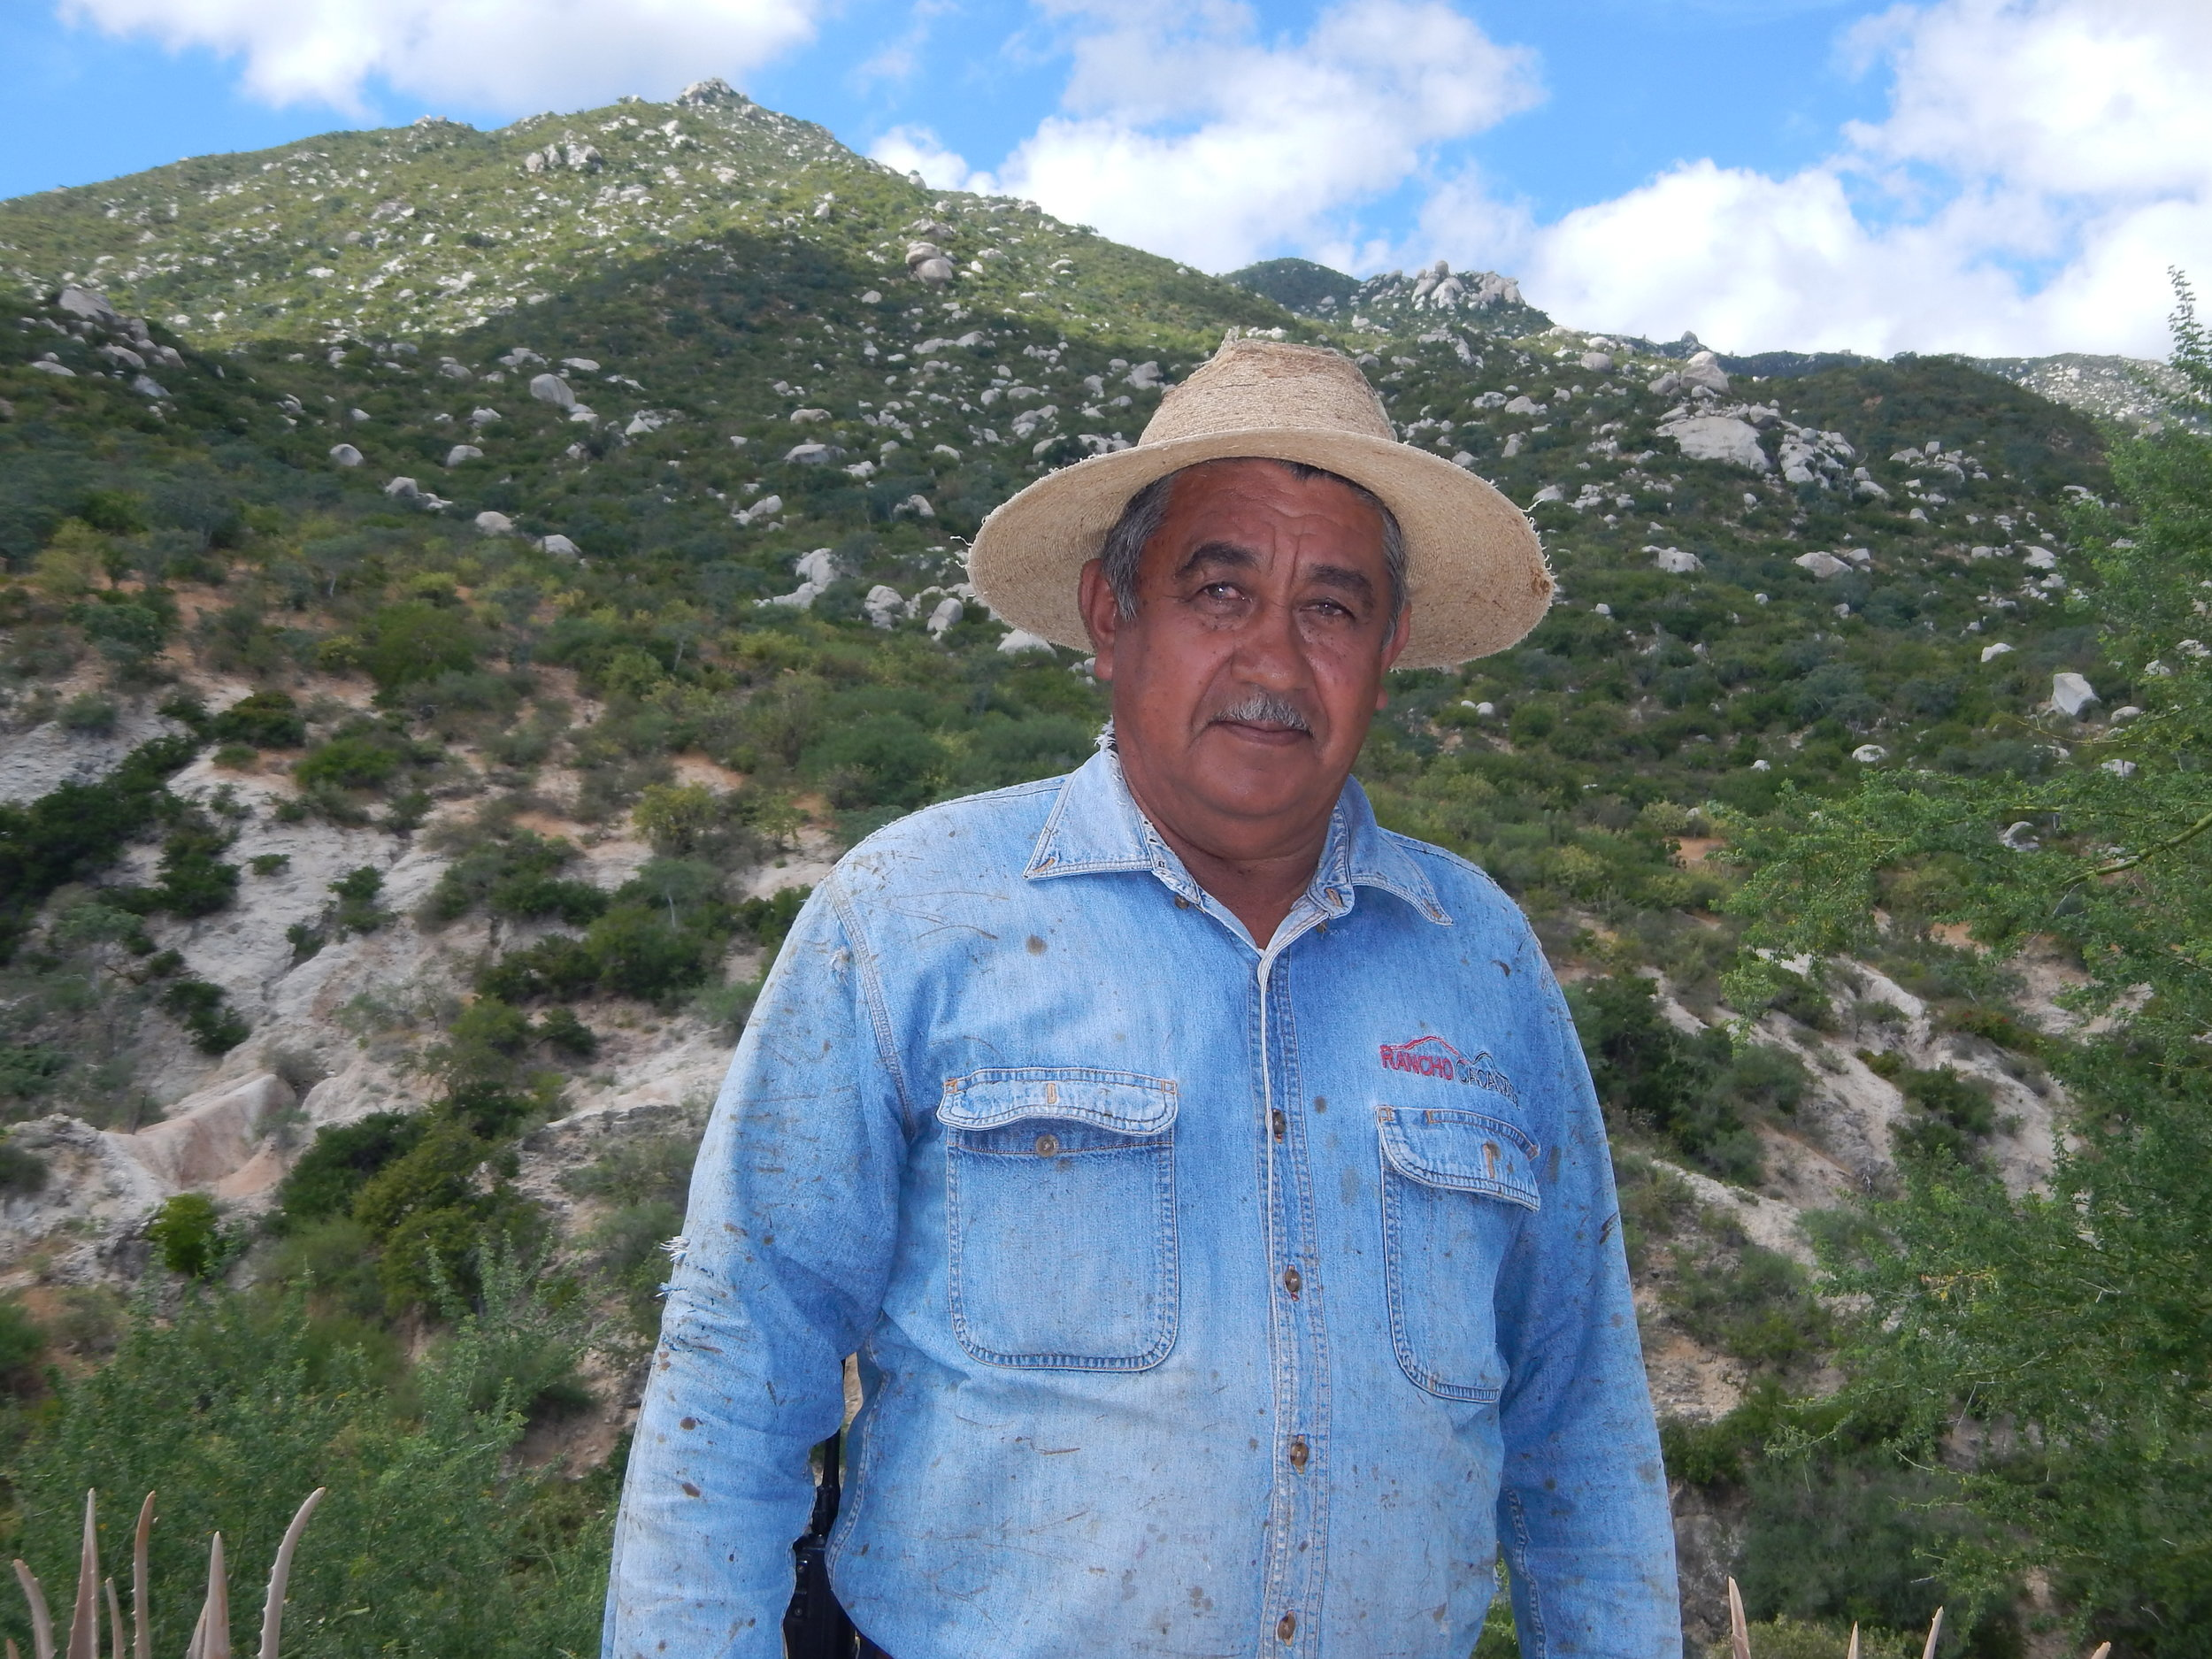 Adolfo Aviles Geraldo   The eldest vaquero, he is full of knowledge of the land and has taught us about the water sources on the ranch. He is in charge of having these water sources connected through a hose network to the different paddocks so the cattle have enough water to drink.